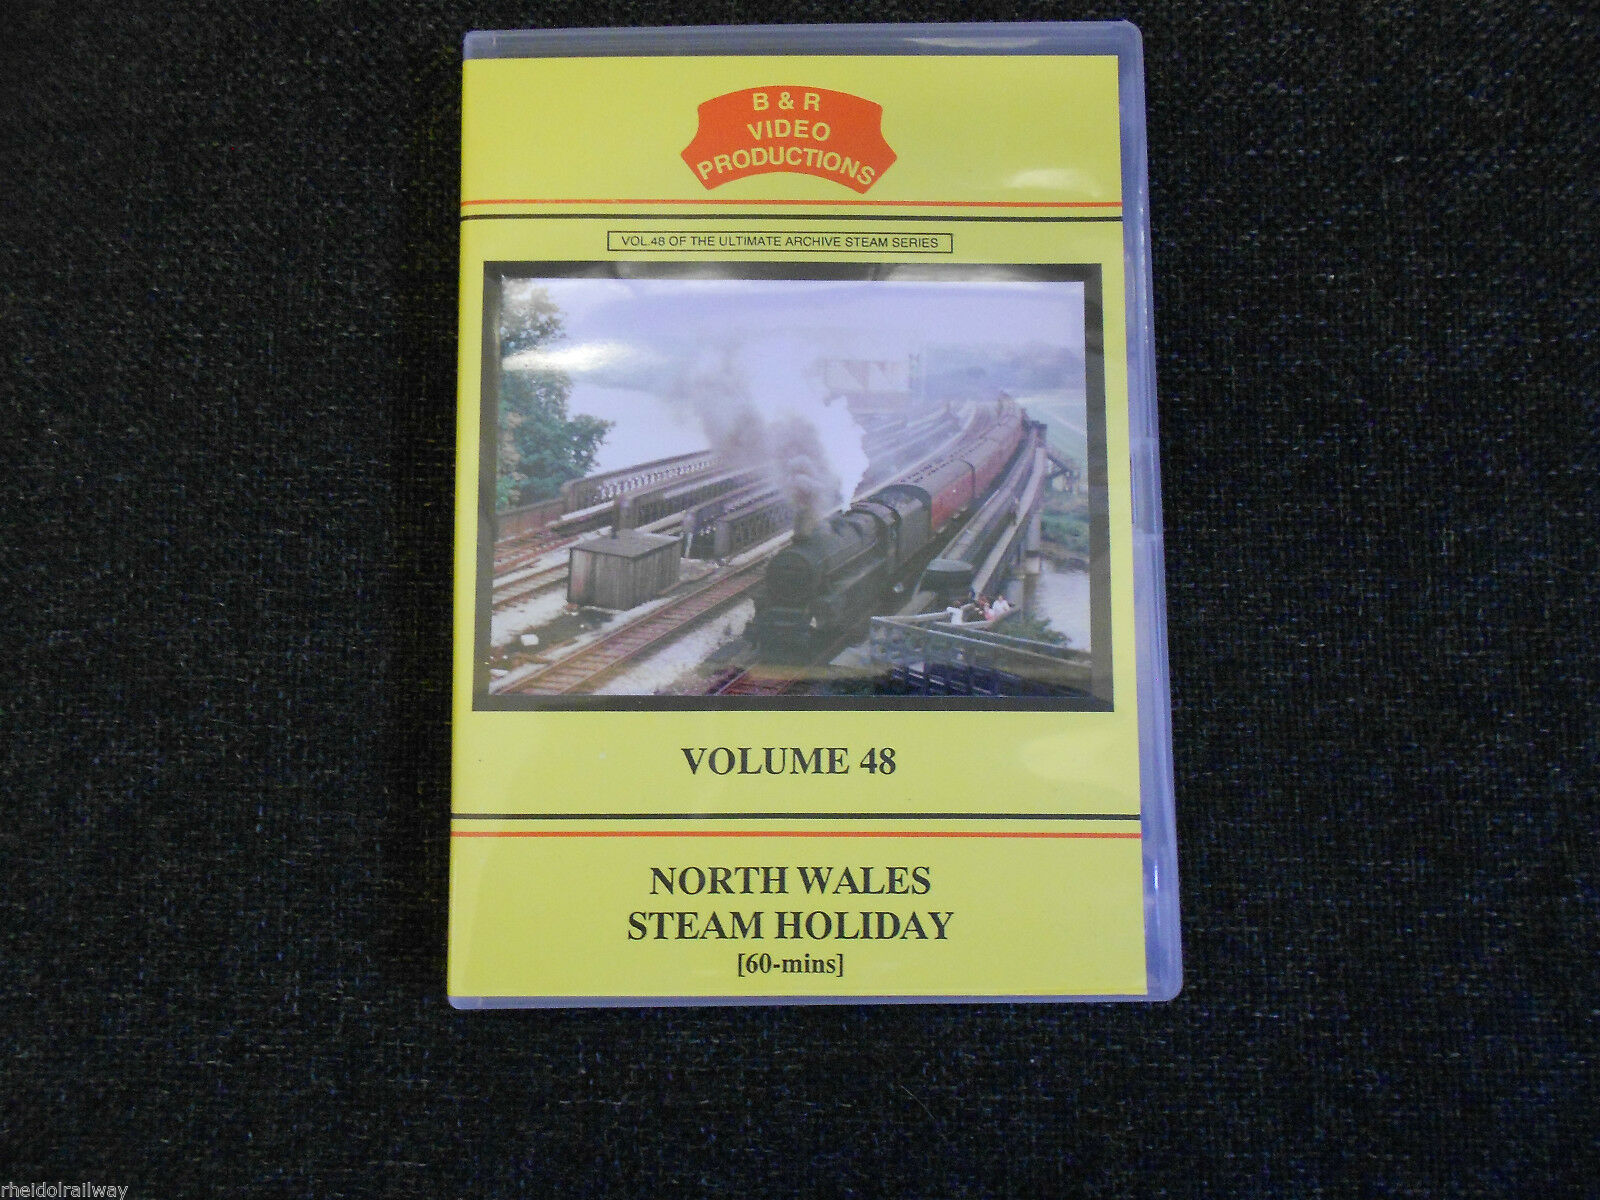 Rugby, Crewe, Chester, Holyhead, North Wales Steam Holiday B&R Vol 48 DVD